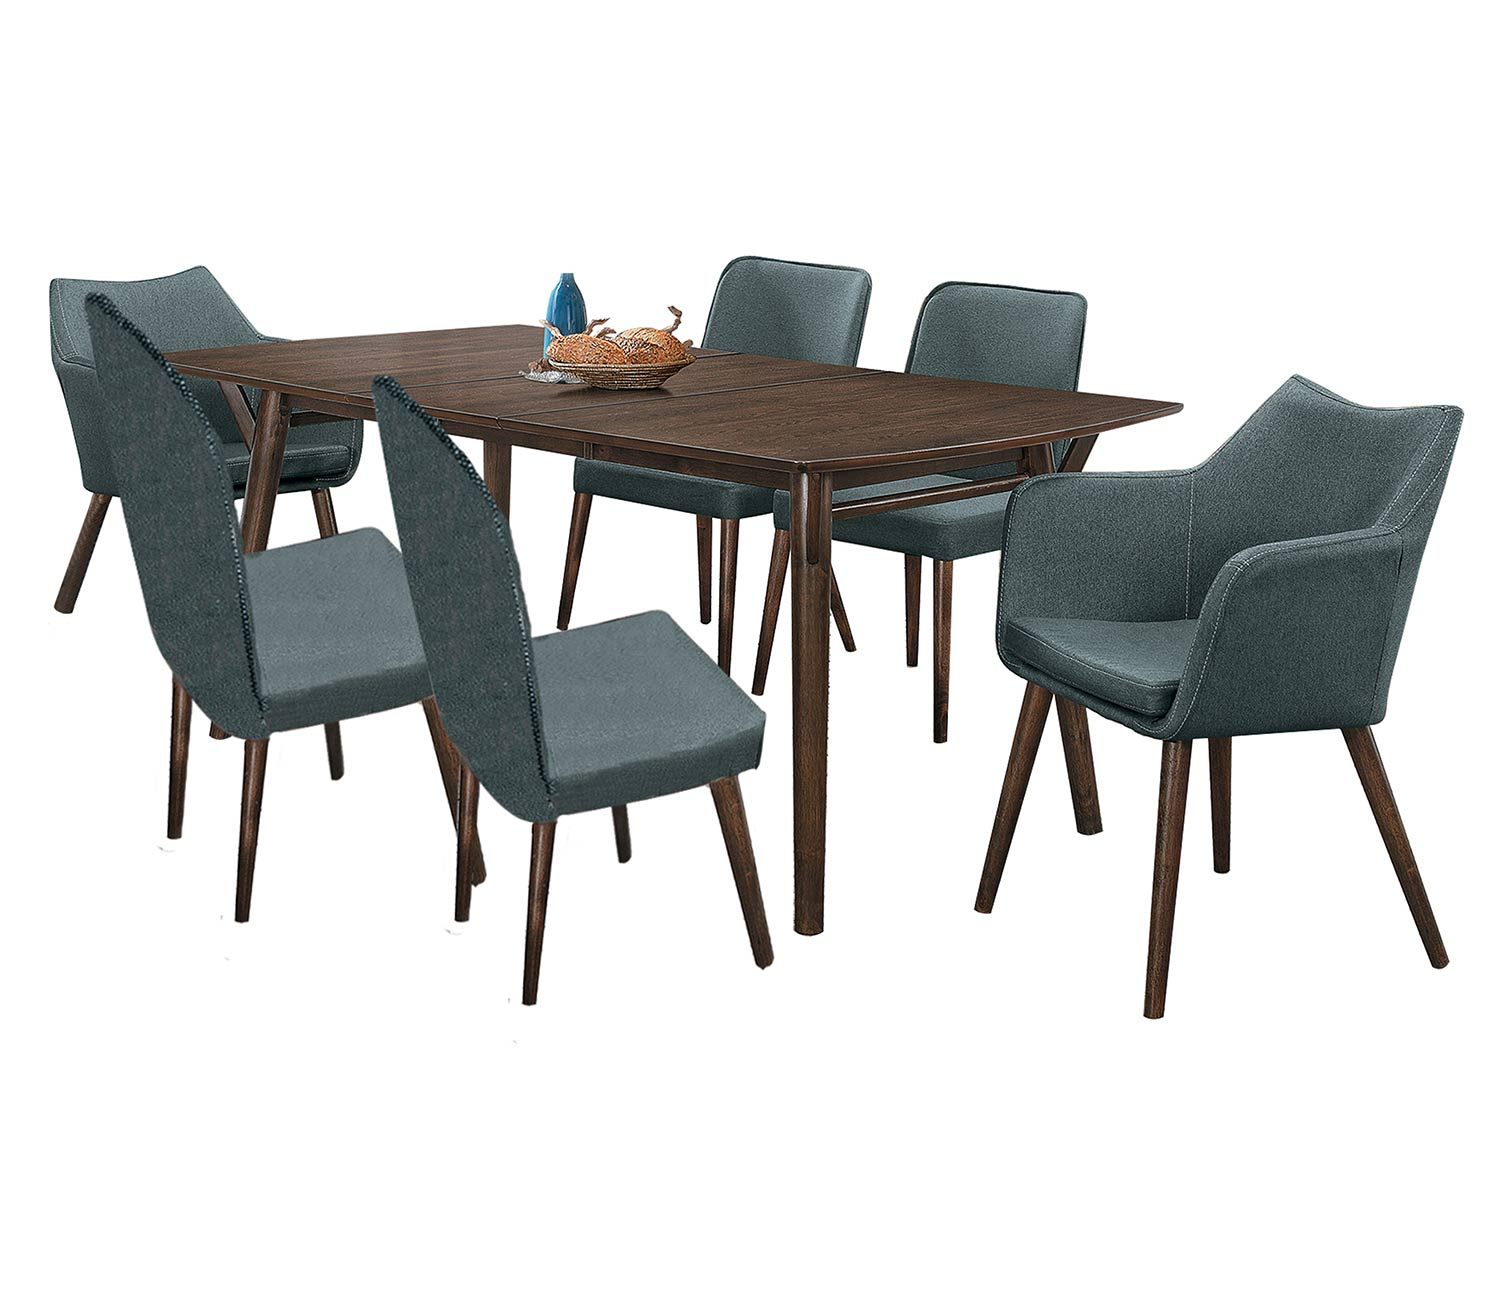 Homelegance Stratus Dining Set - Dark